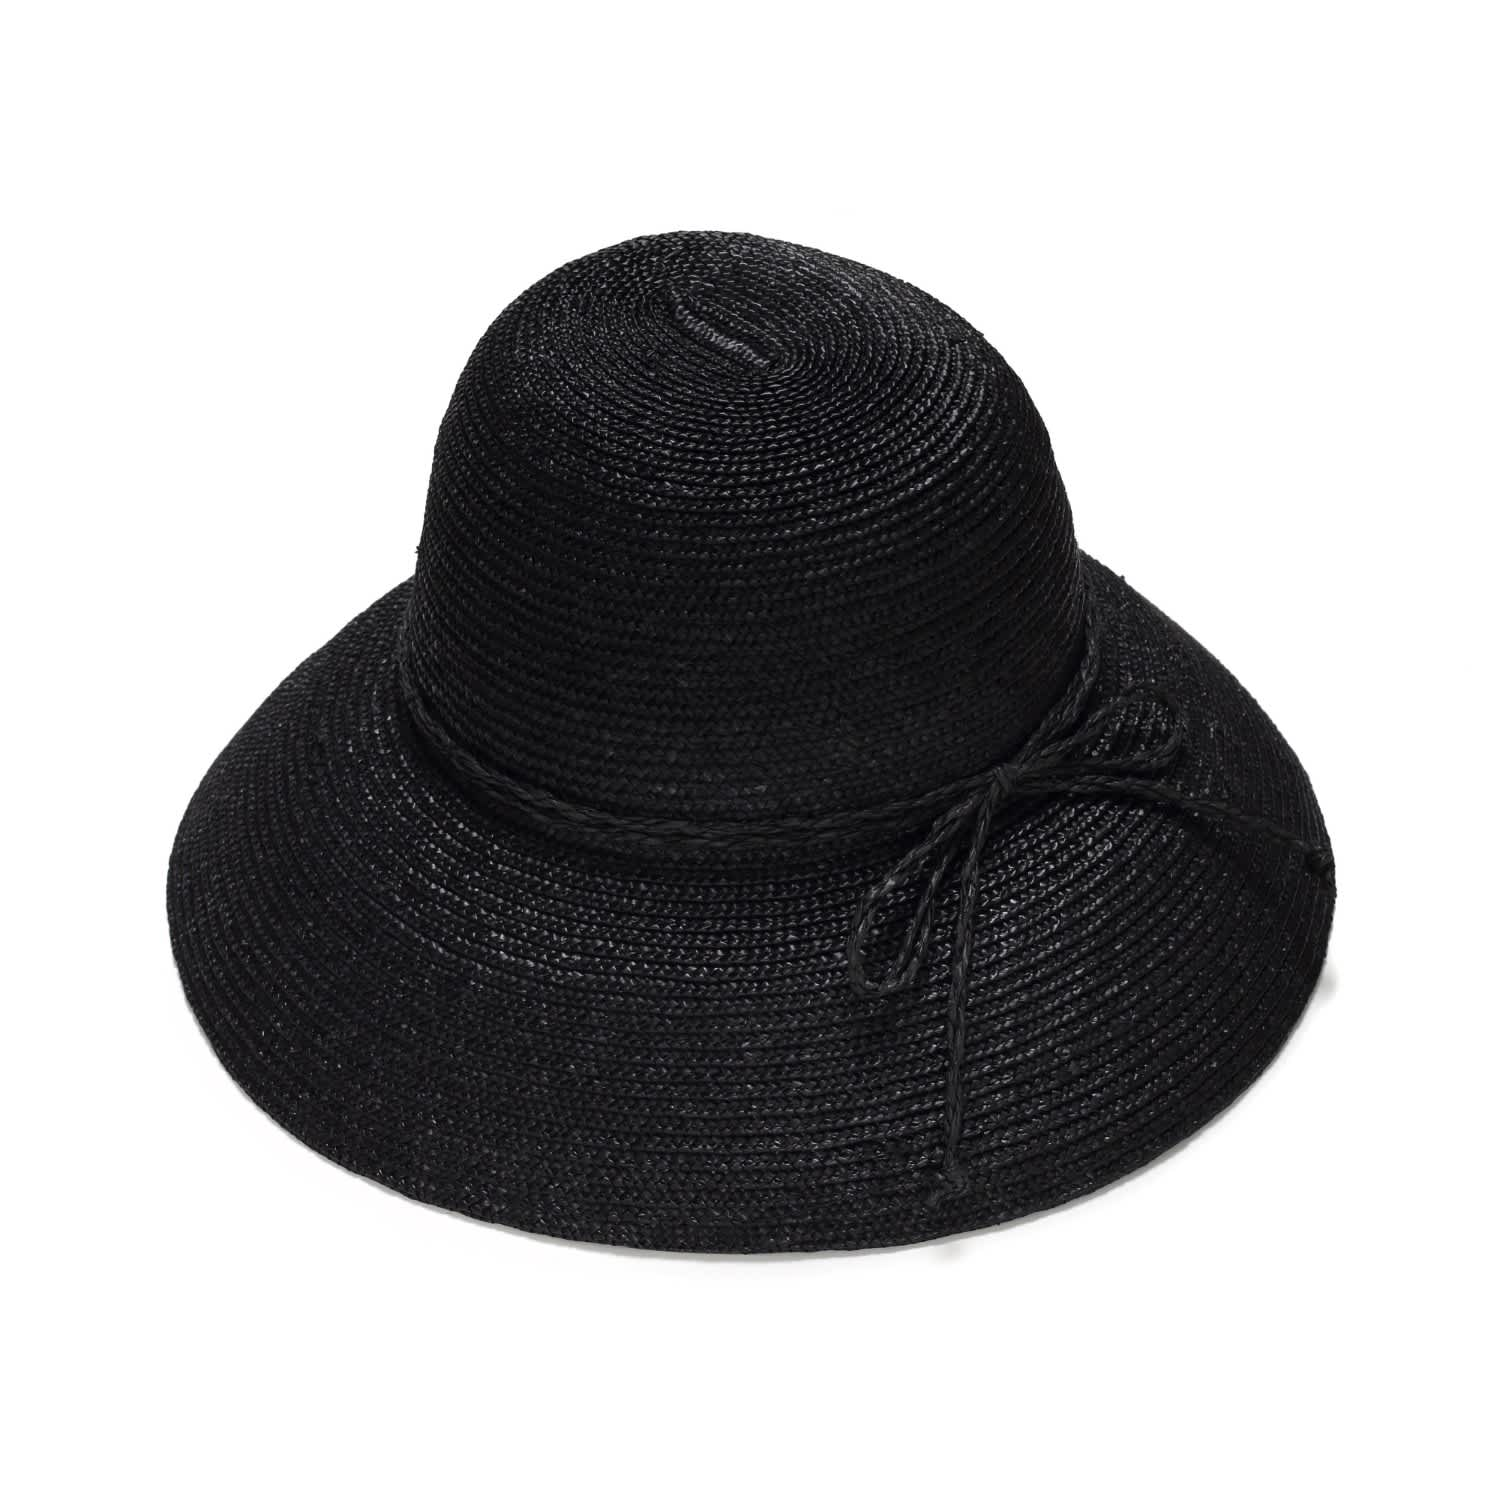 ad080d5d5f7b5 Black Cloche Straw Hat image